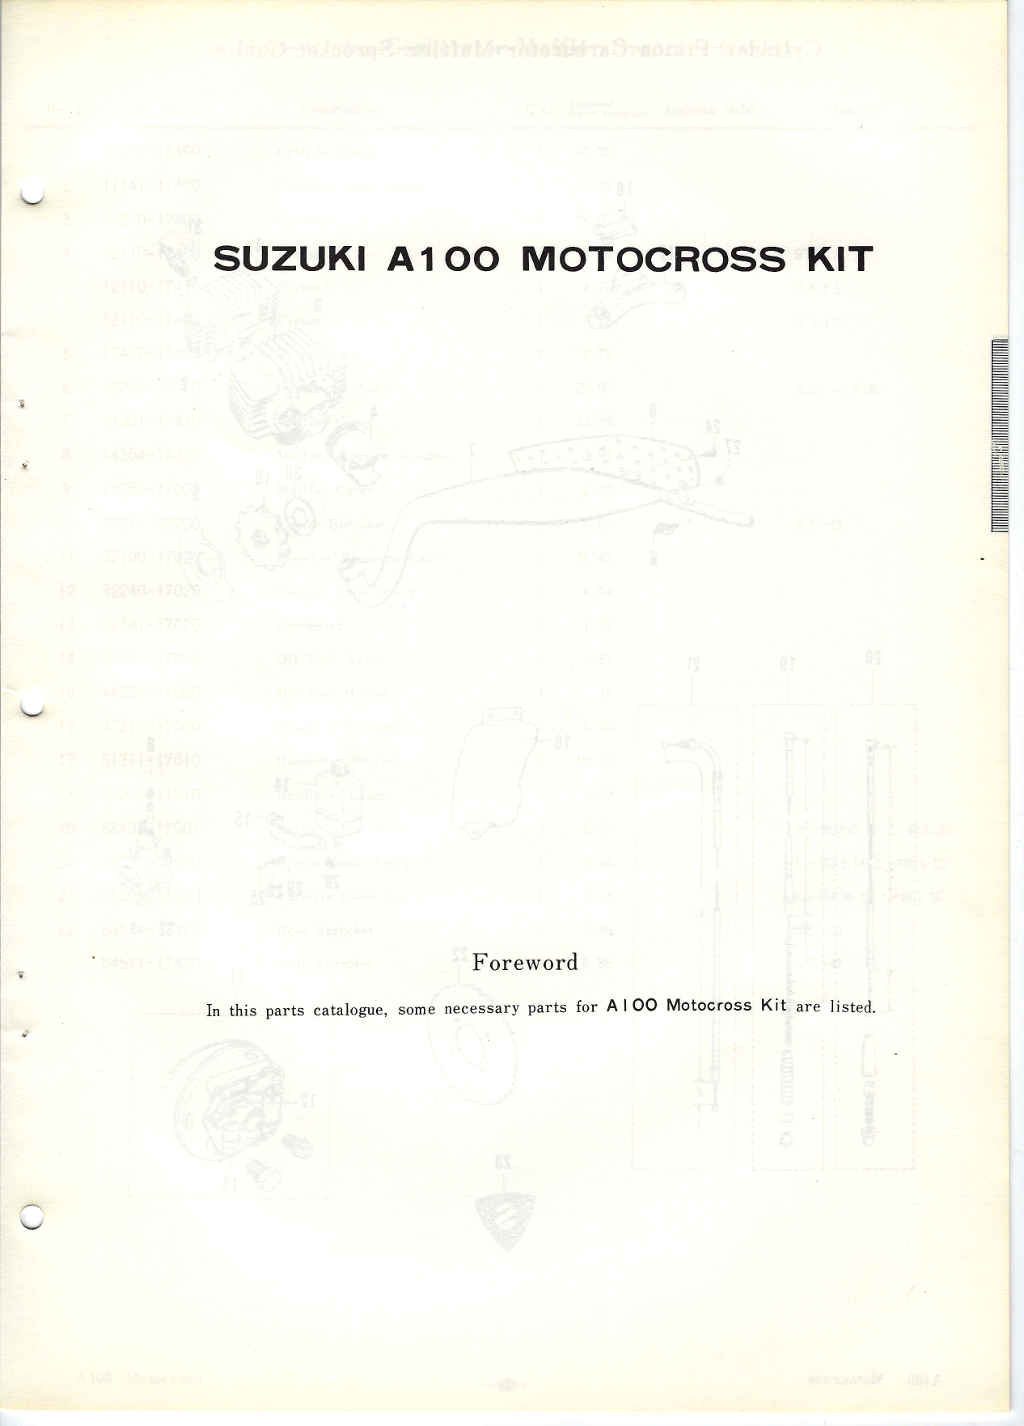 Suzuki A100 Motocross Kit · Cylinder,Carb,Exhaust, Cables